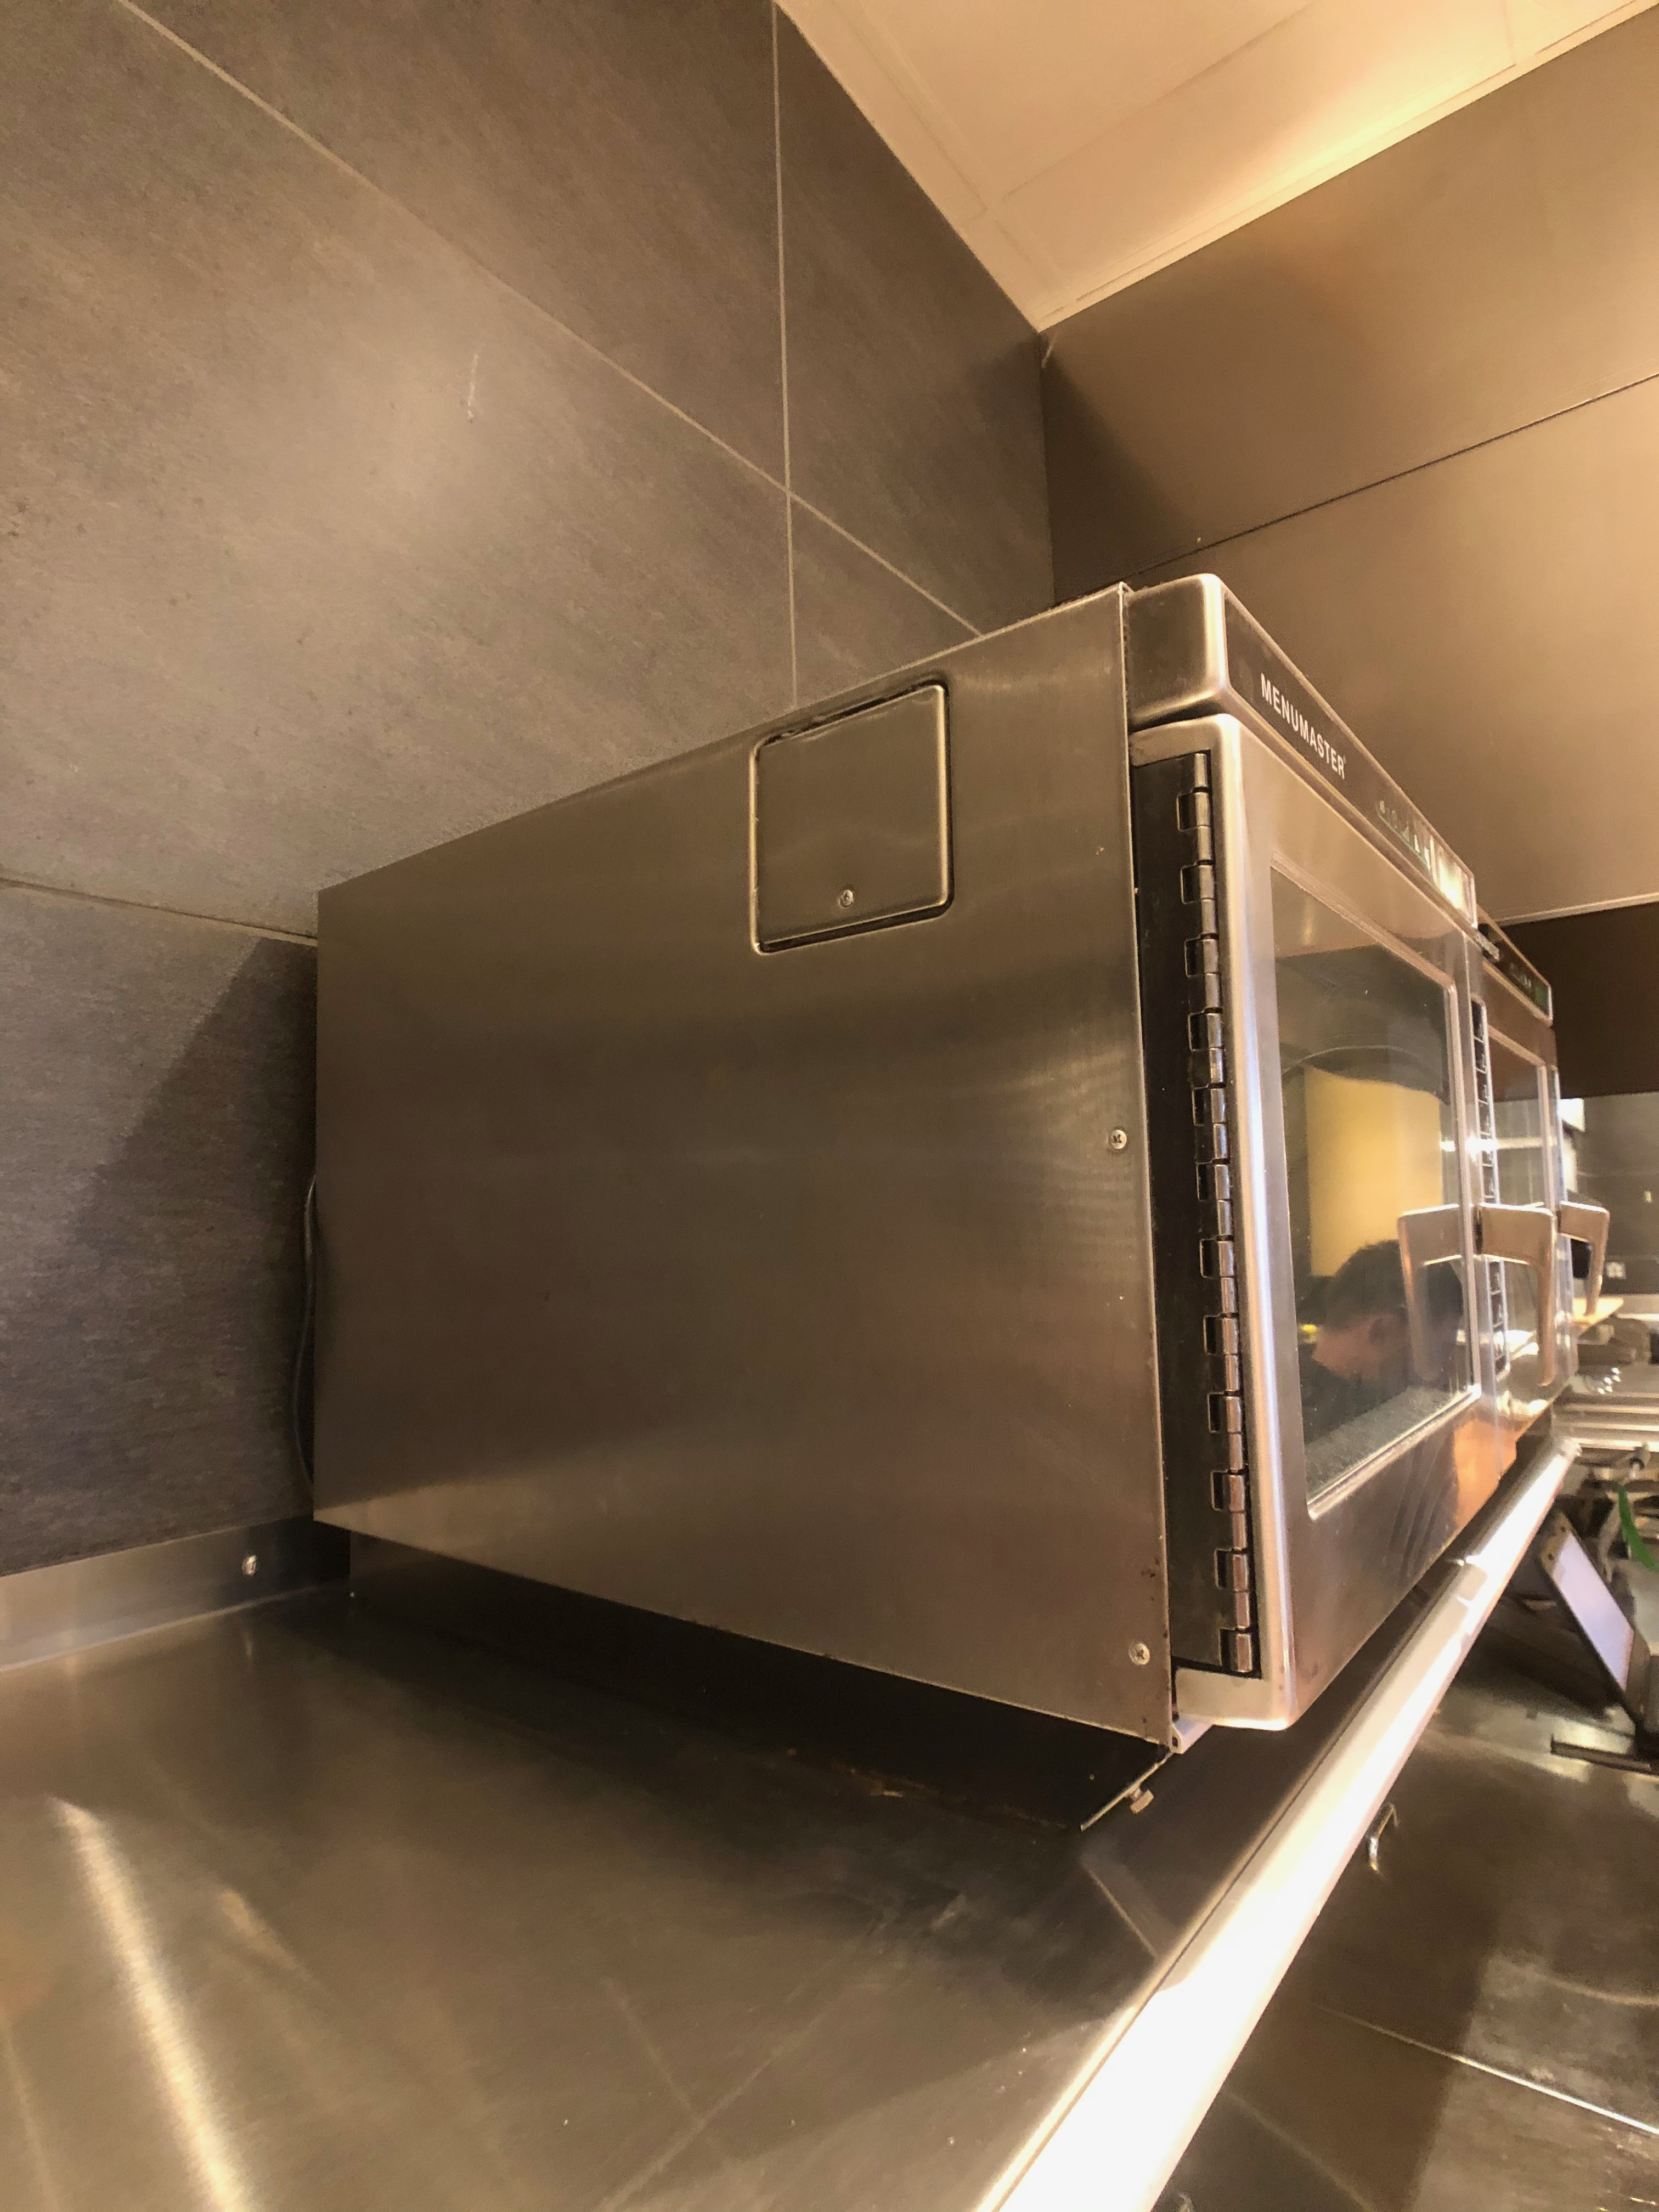 Menumaster Commercial Microwave, Model MRC22S2, 1 CuFt Interior Space, 2200 Power Output - Image 3 of 5